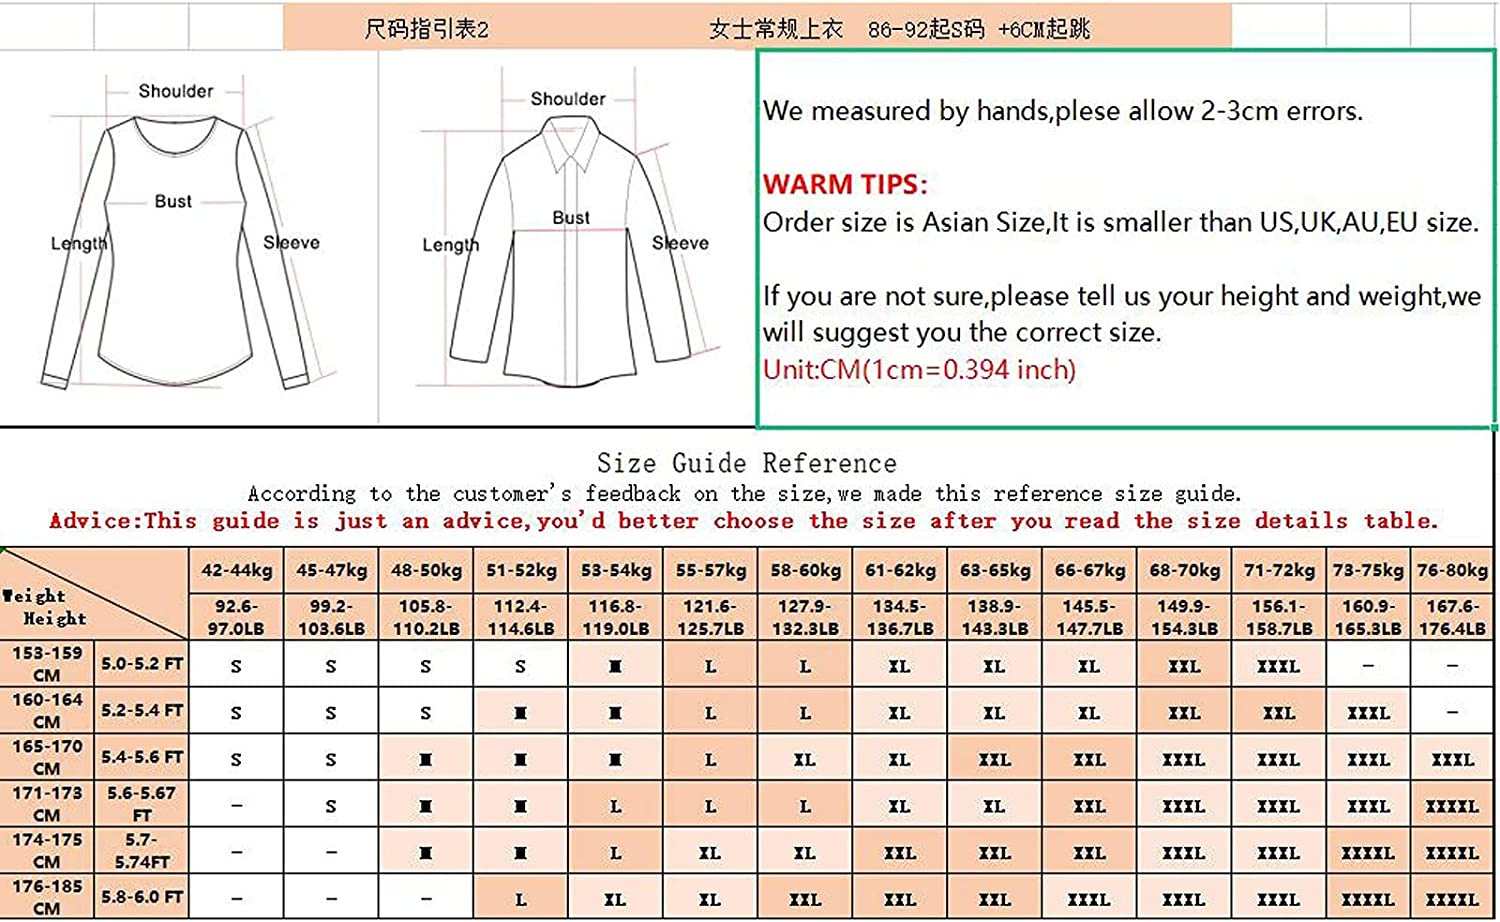 ORT Womens Summer Tops Zip Up, Womens V Neck T Shirts Heart Printed Long Sleeve Loose Tunic Casual Plus Size Sweatshirt Top